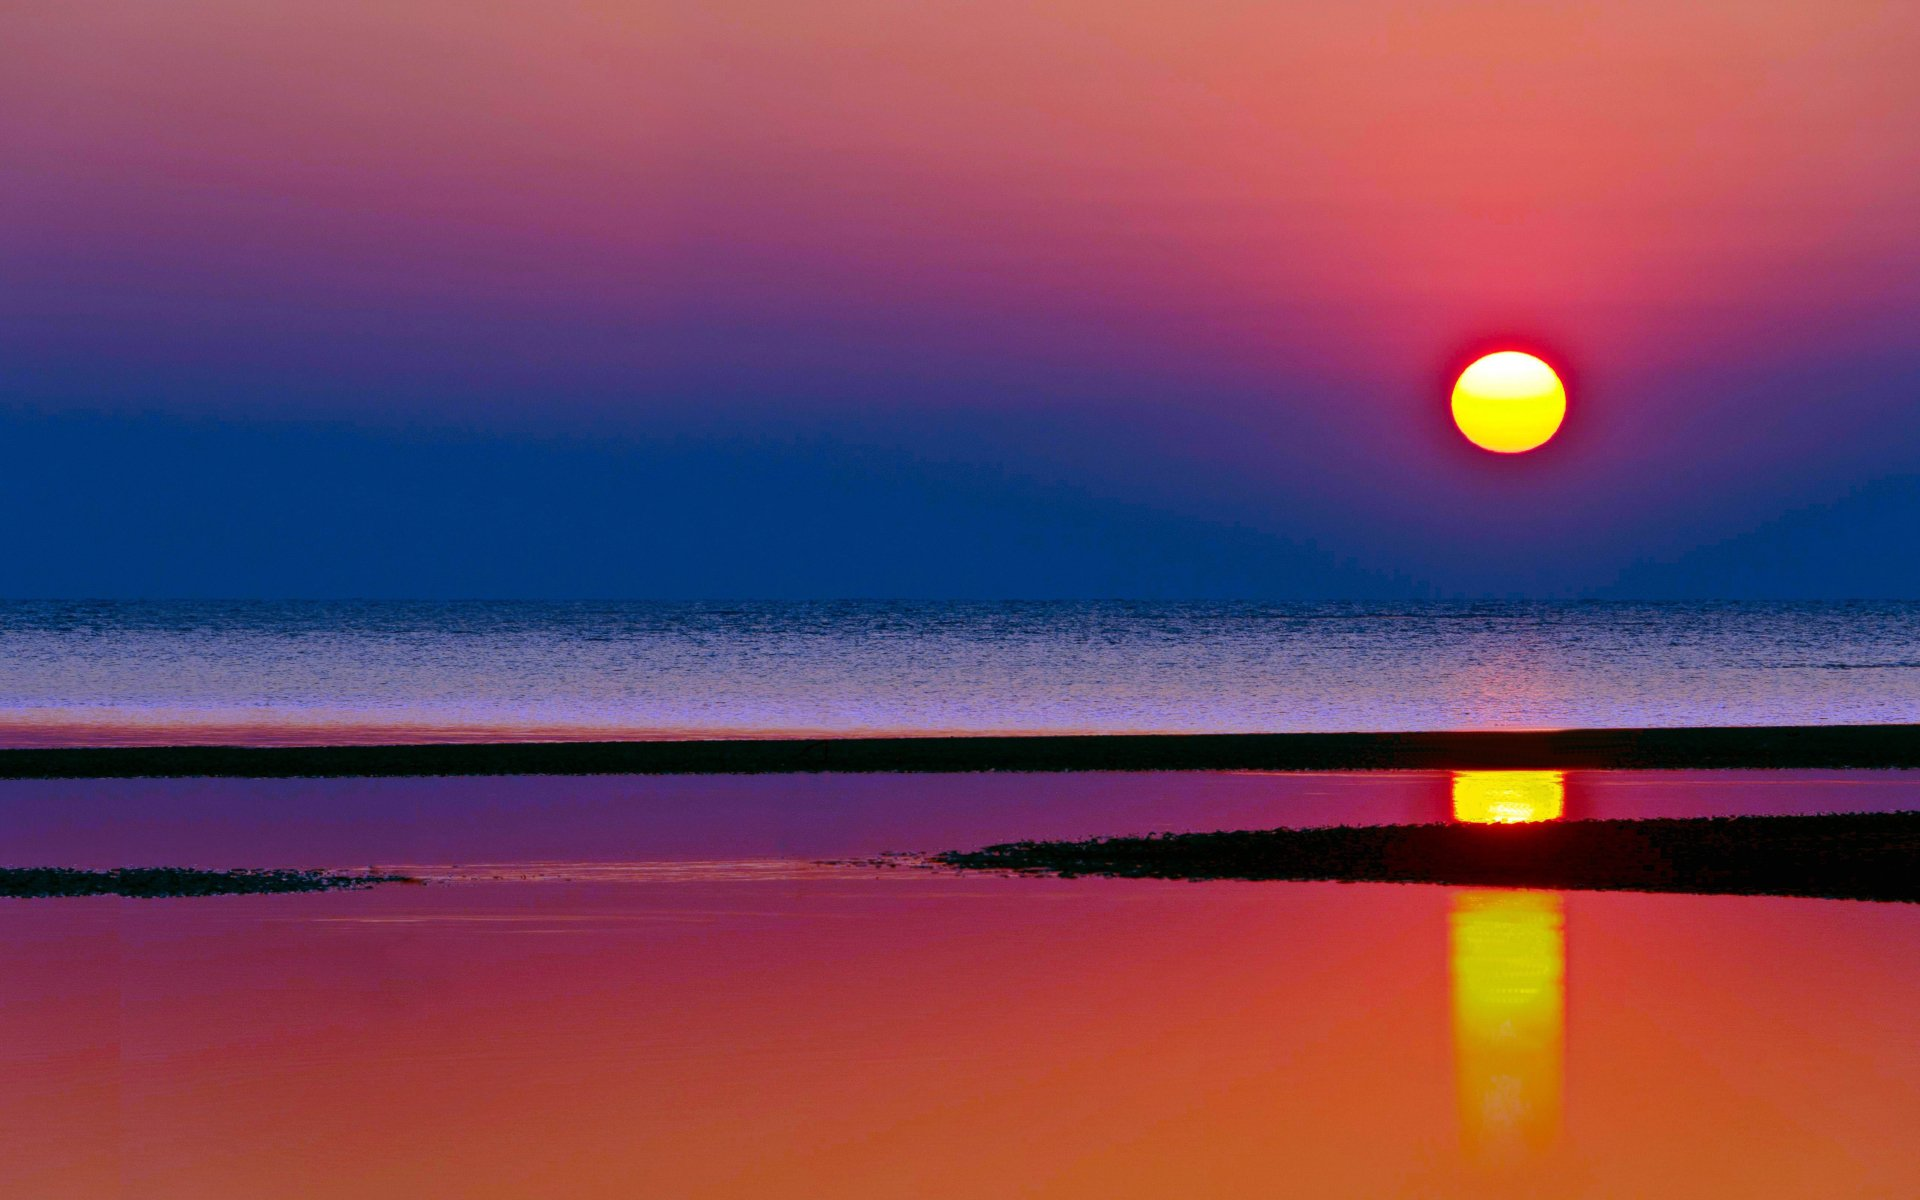 Earth - Beach  Sunset Horizon Sea Reflection Scenic Wallpaper